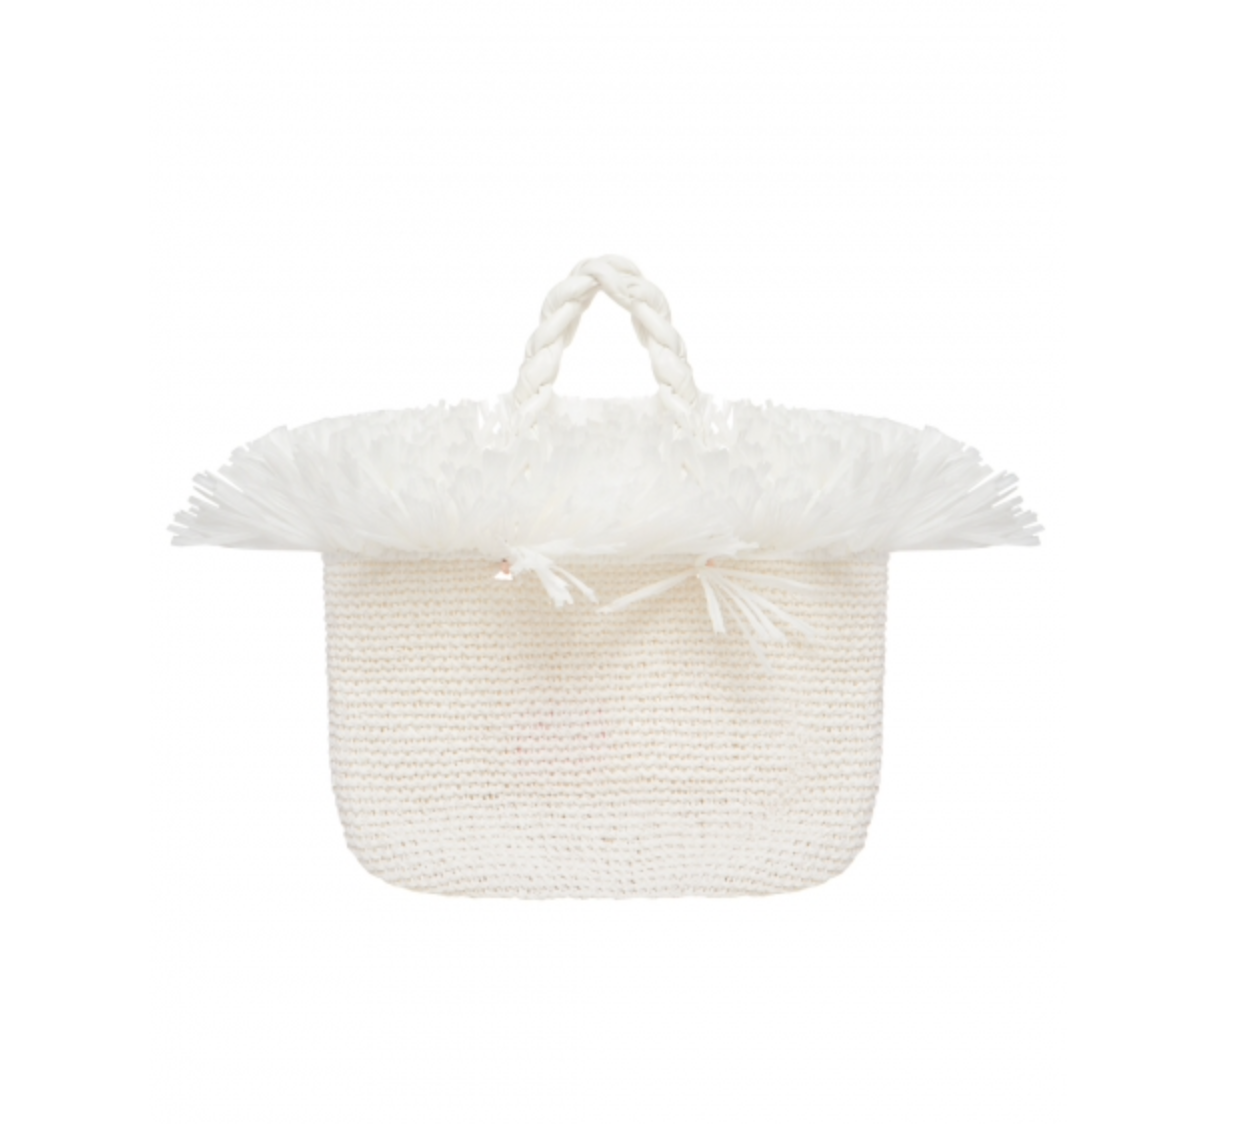 White Large Malibu Bag by 0711 Tbilisi on curated-crowd.com